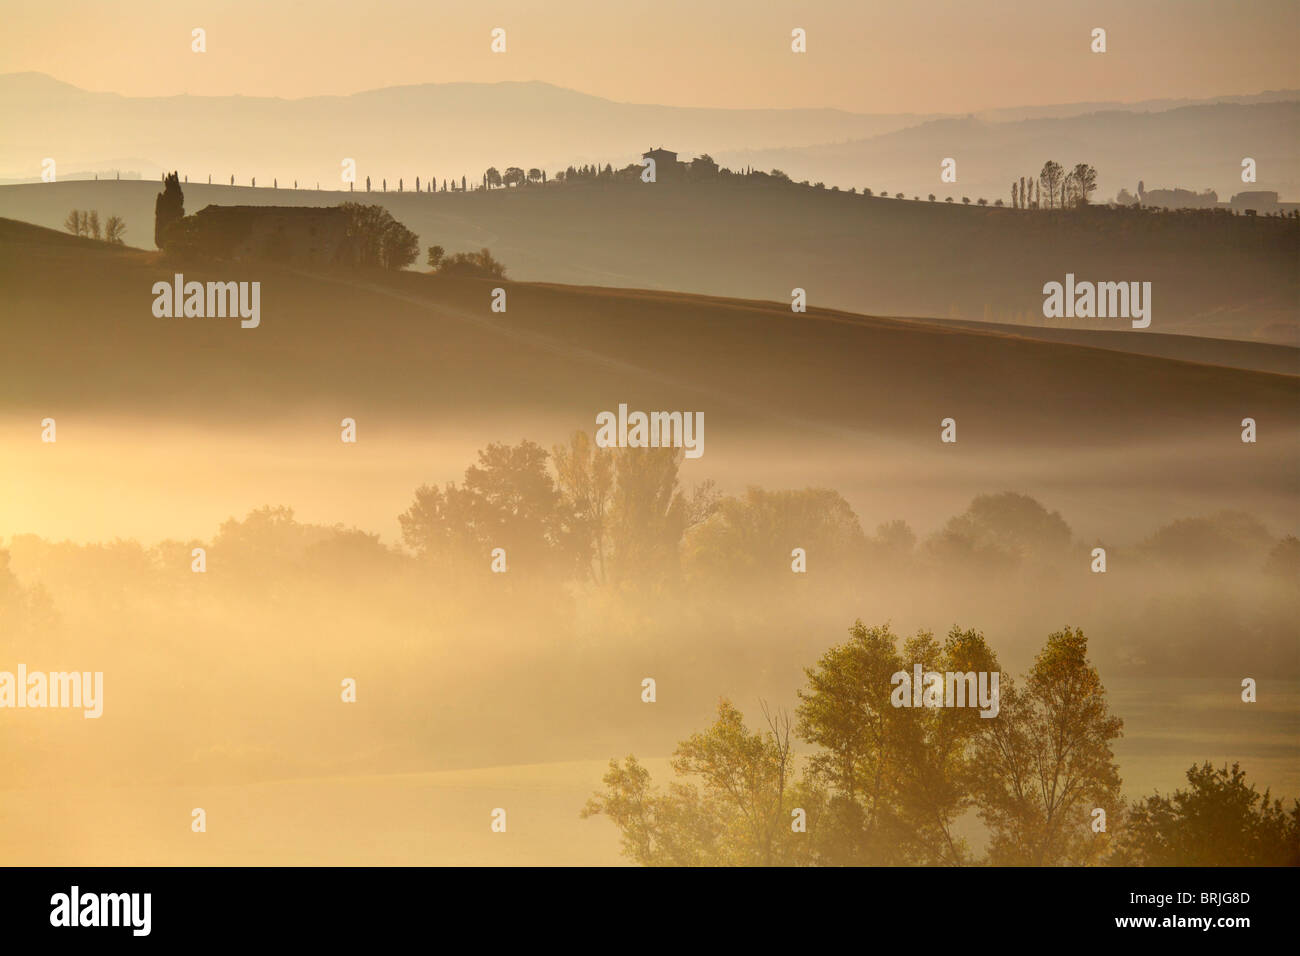 Sunrise light warms the misty valleys around Pienza in the Val D'Orcia region of Tuscany, Italy - Stock Image